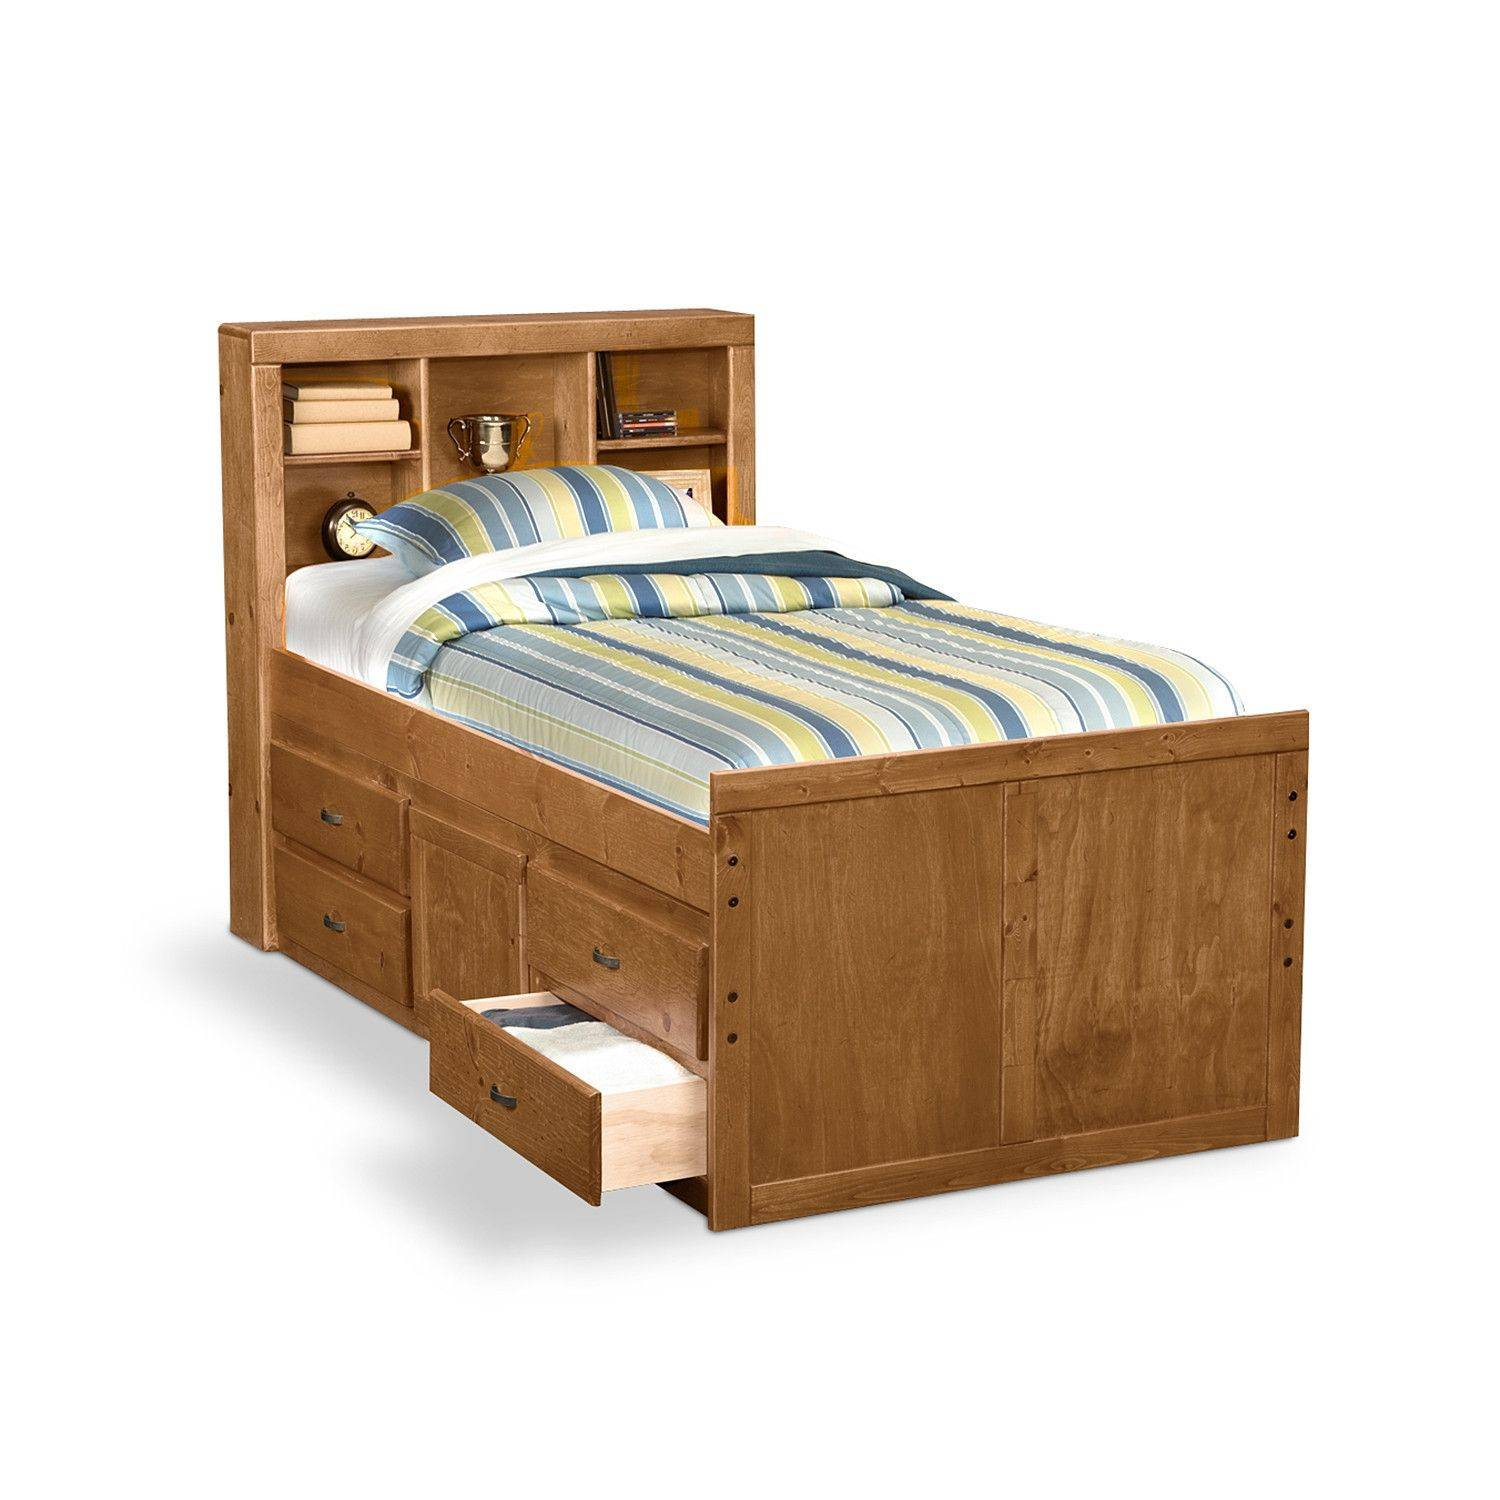 Inspirational Full Size Bed Vs Queen Elegant 30 New Full Size Bed Frame with Storage and Headboard